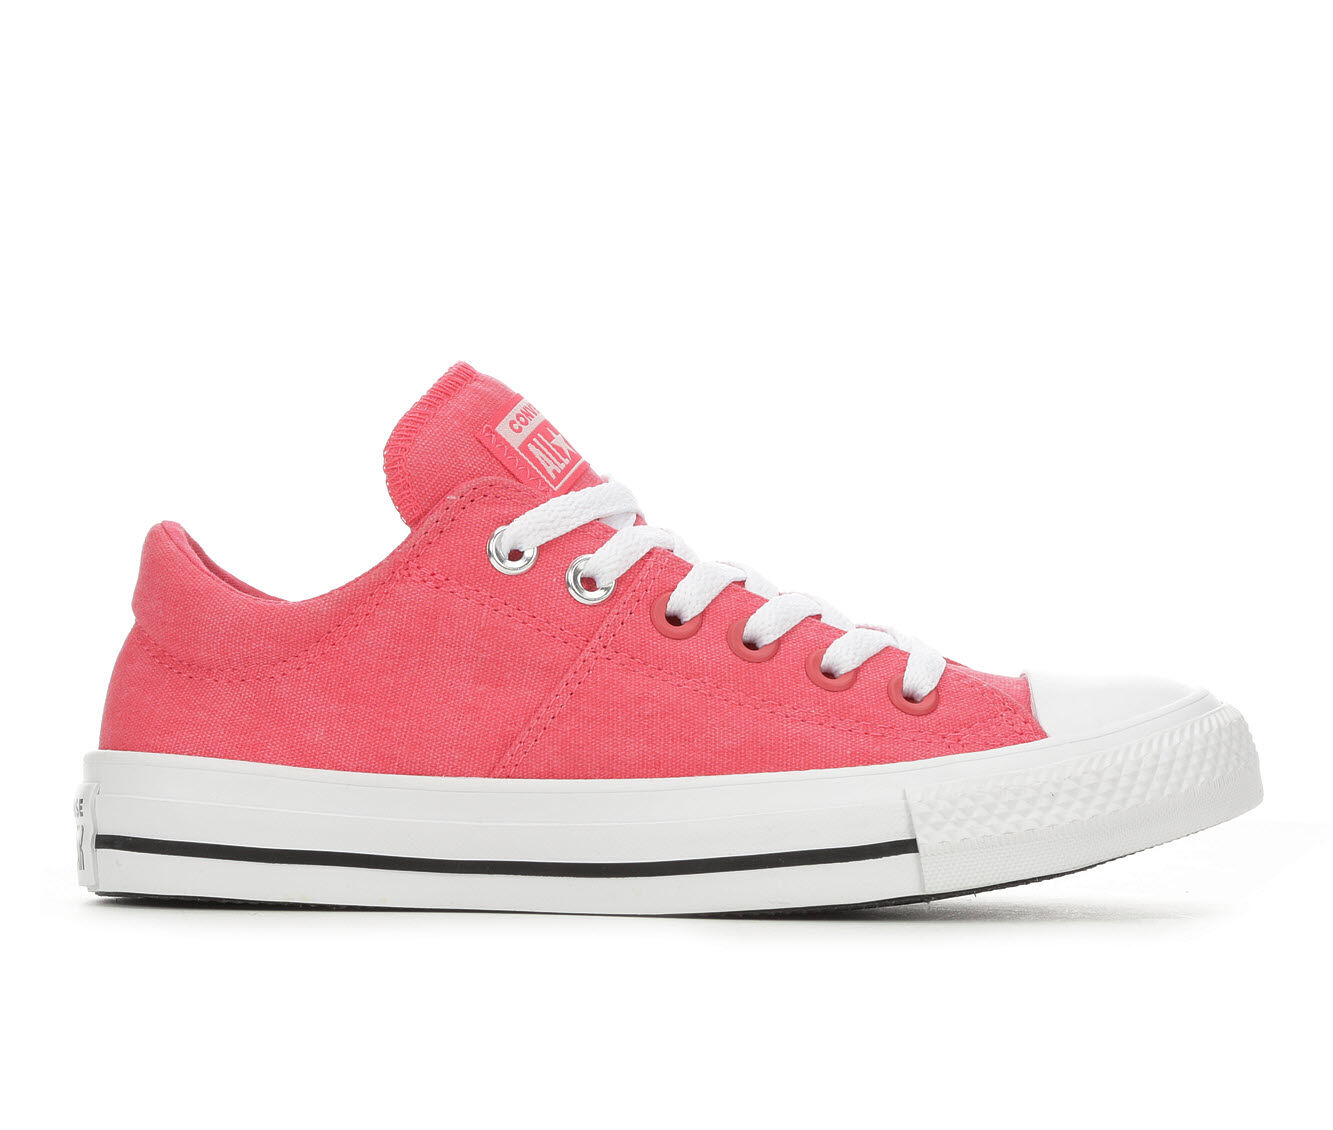 Women's Converse Madison Ox Sneakers Strawberry/Wht